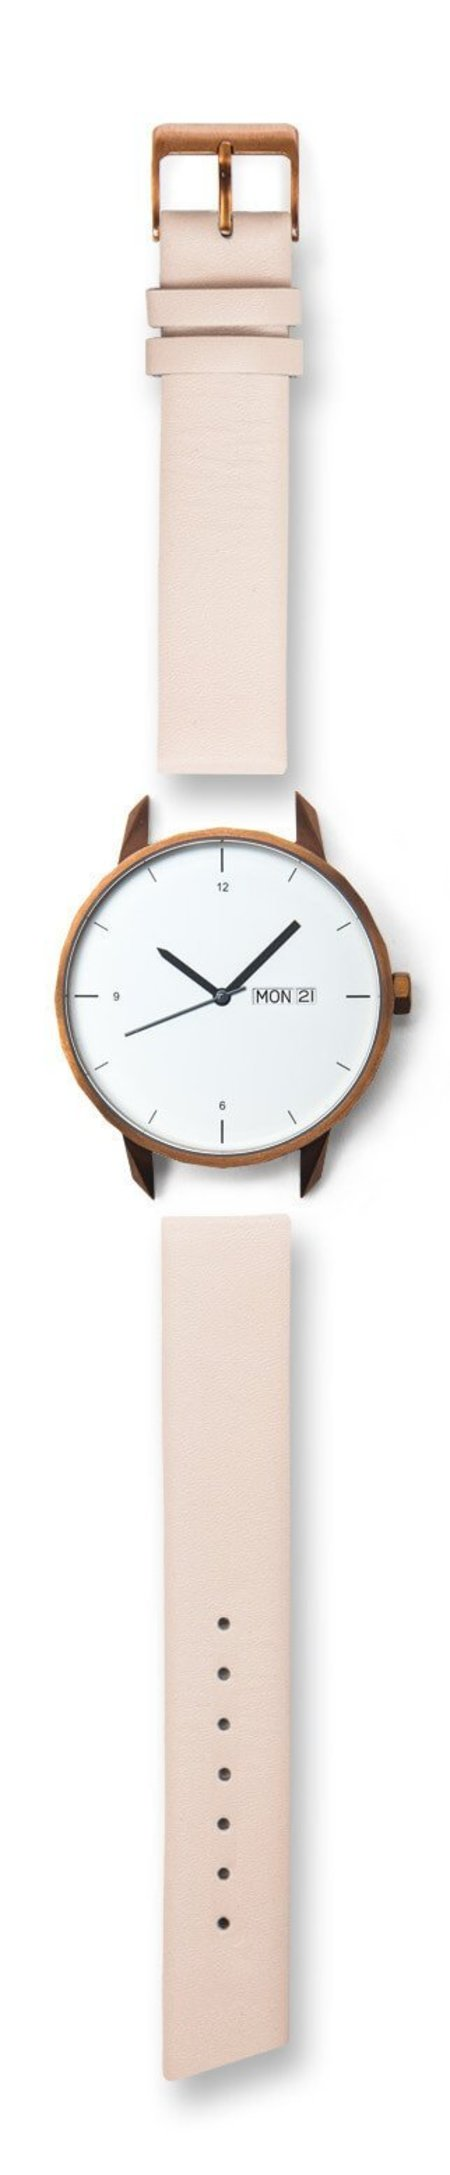 Unisex Tinker Watches 42mm Standard Strap Watch - Copper/Nude